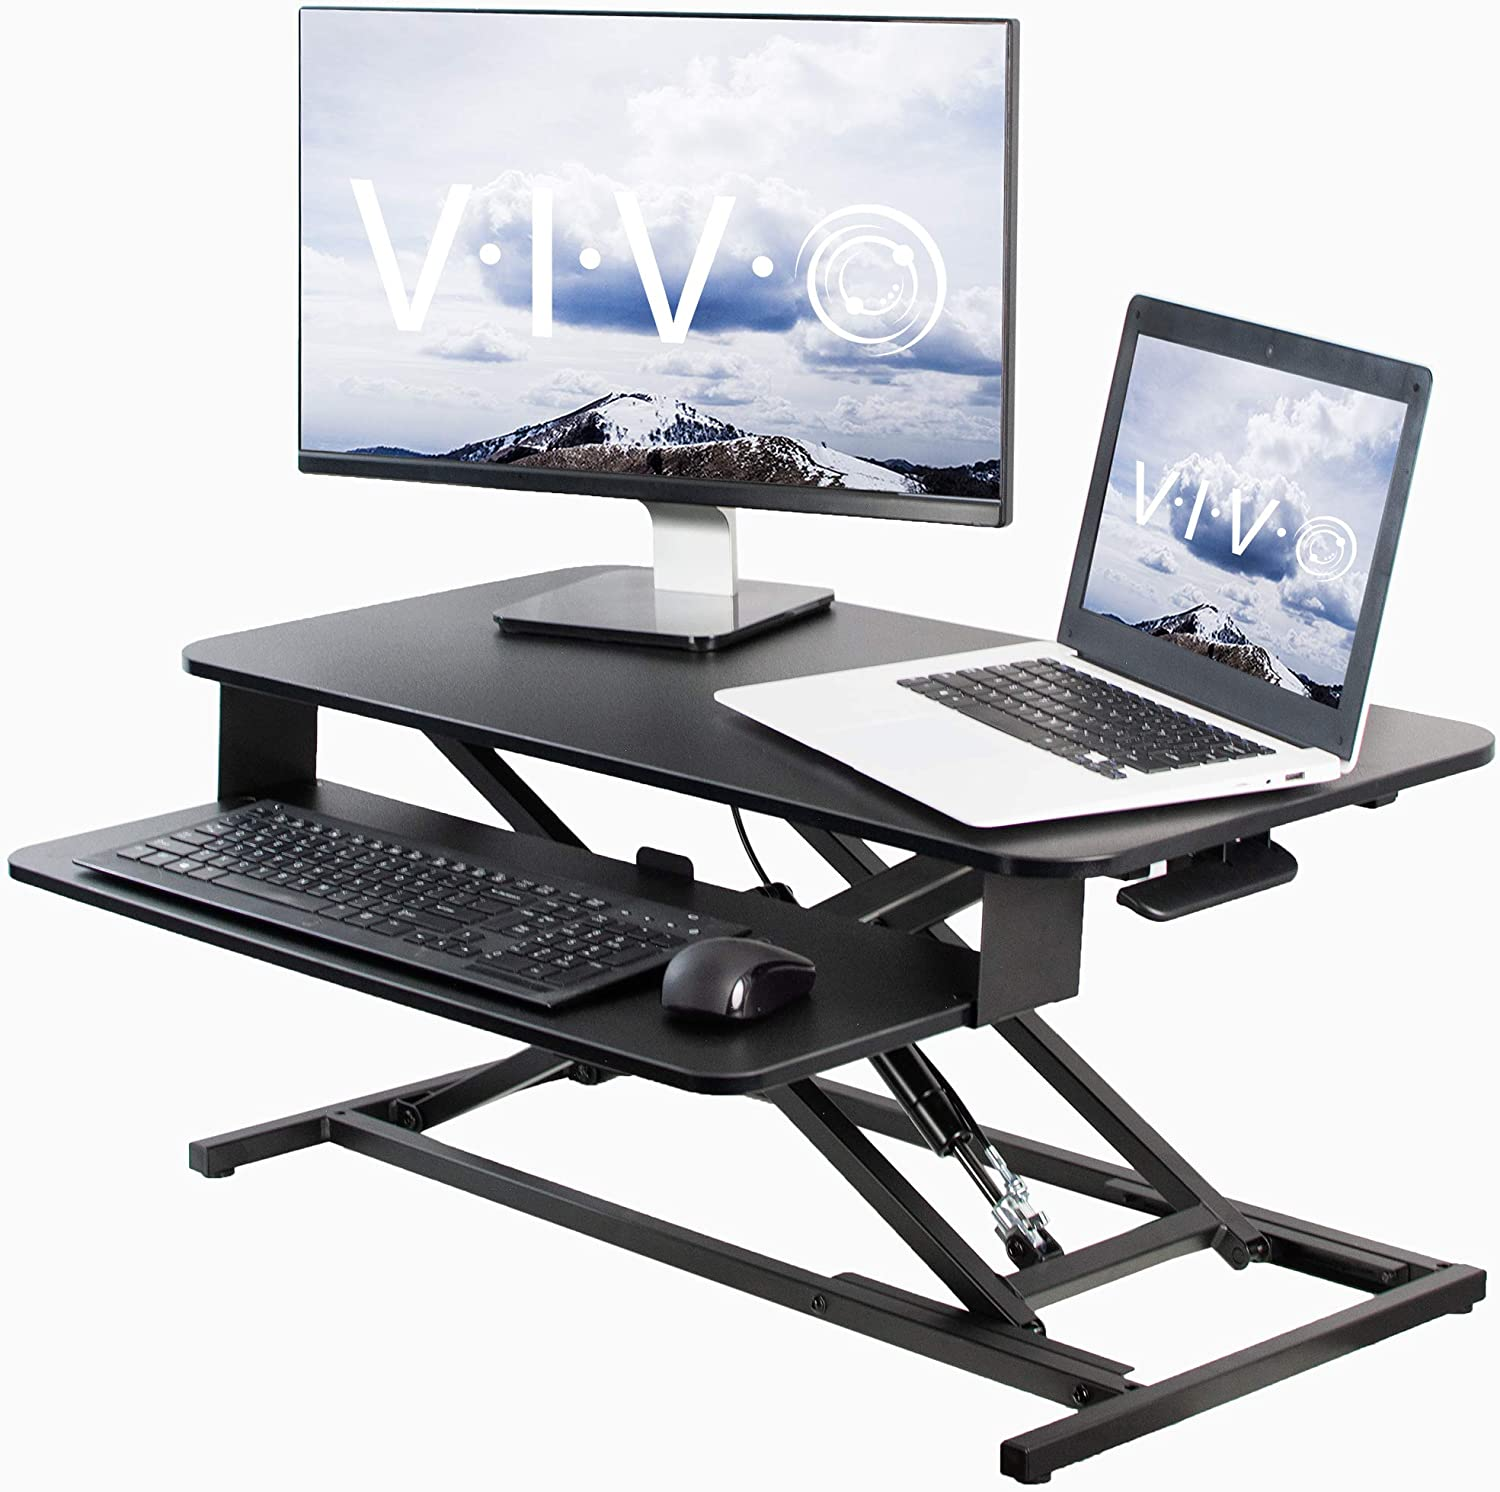 VIVO Black Height Adjustable 32 inch Economic Standing Desk Converter with Pneumatic Spring, Sit Stand Dual Monitor and Laptop Riser Workstation (DESK-V000S)